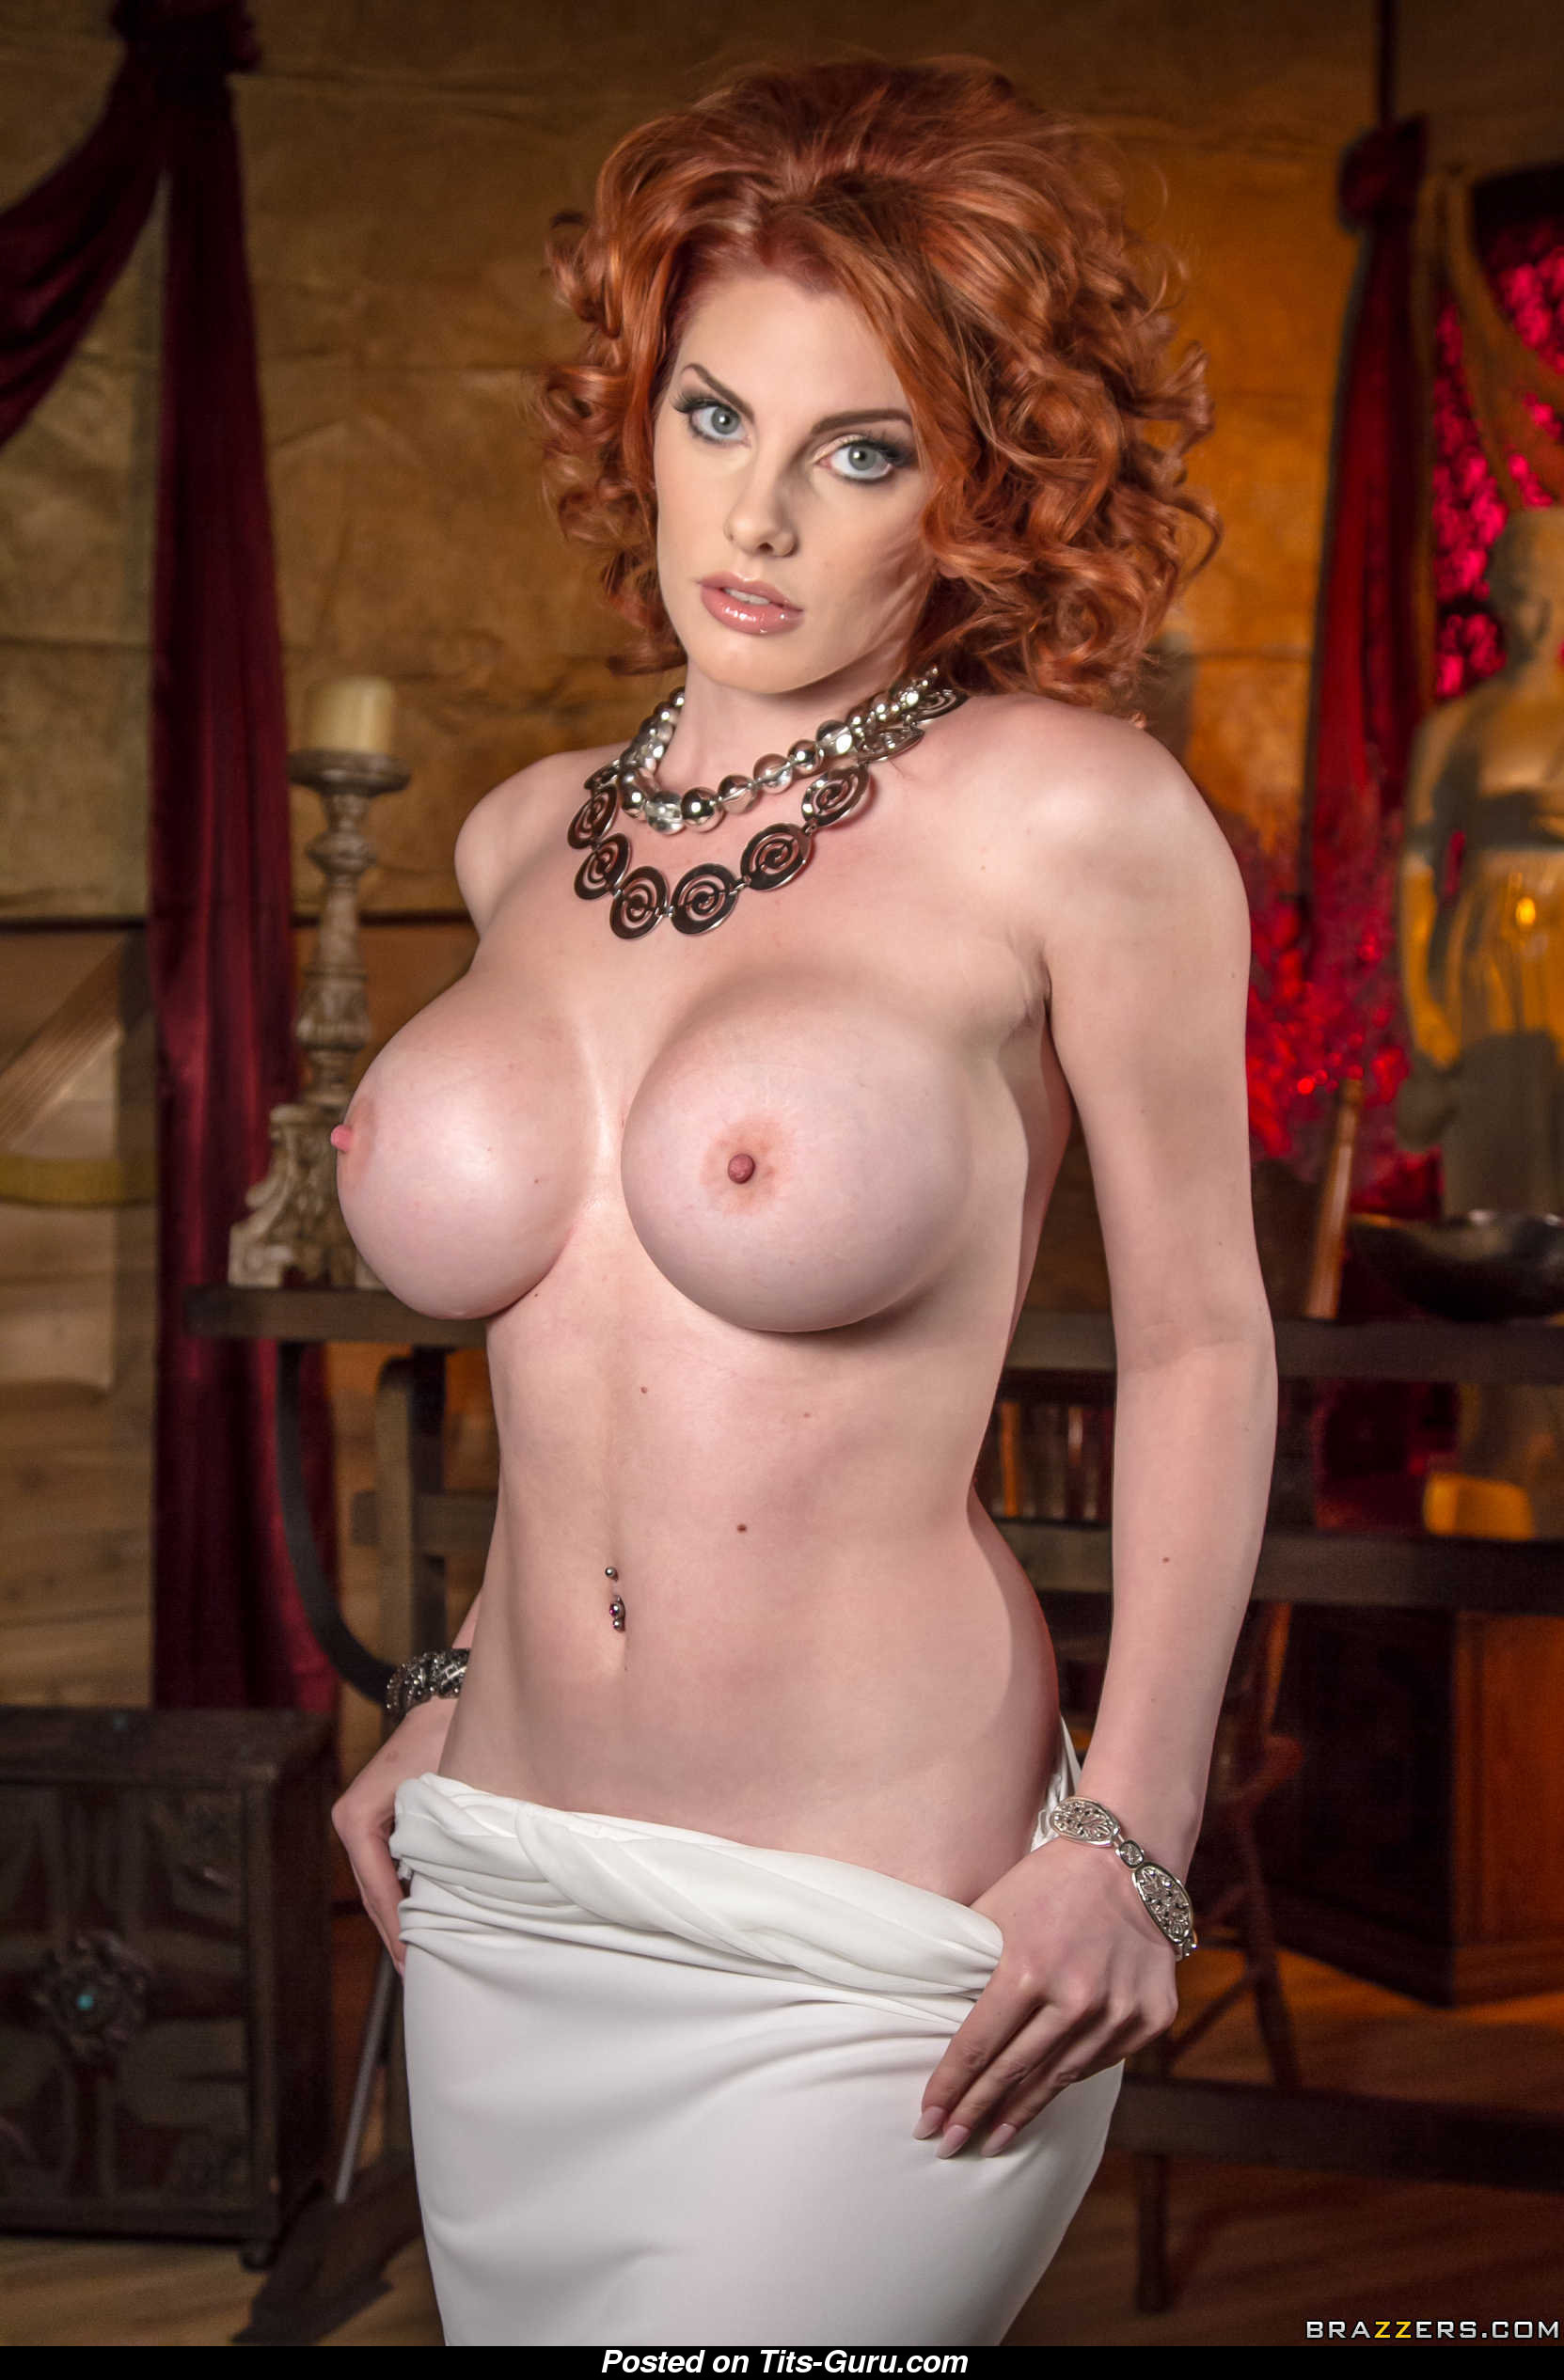 Lilith Lust Naked Asian Red Hair With Fake Boobies Pic